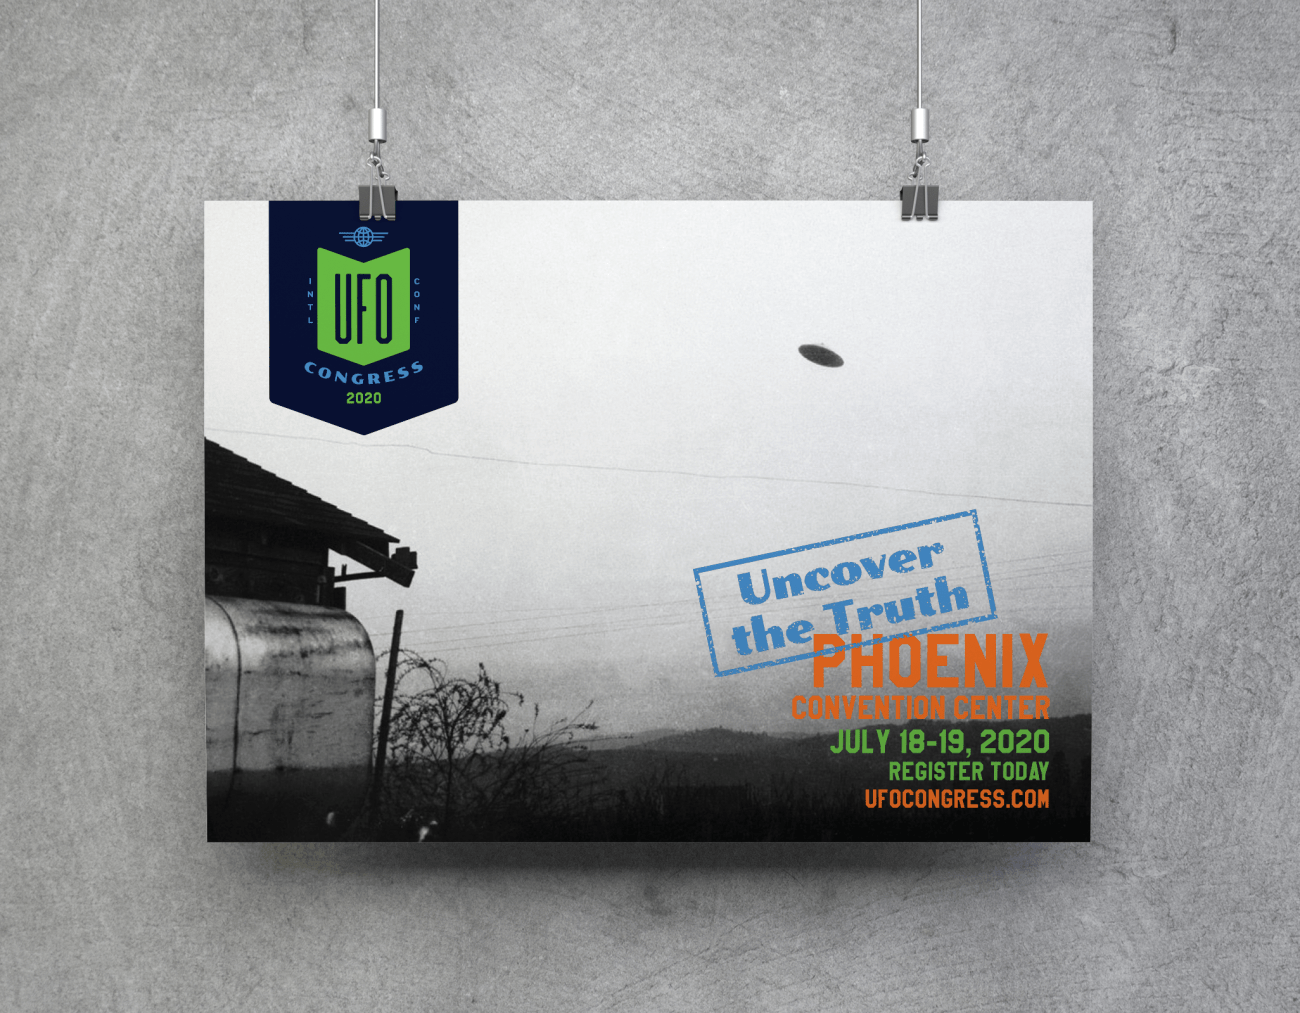 UFO poster containing black and white picture and text advertising conference